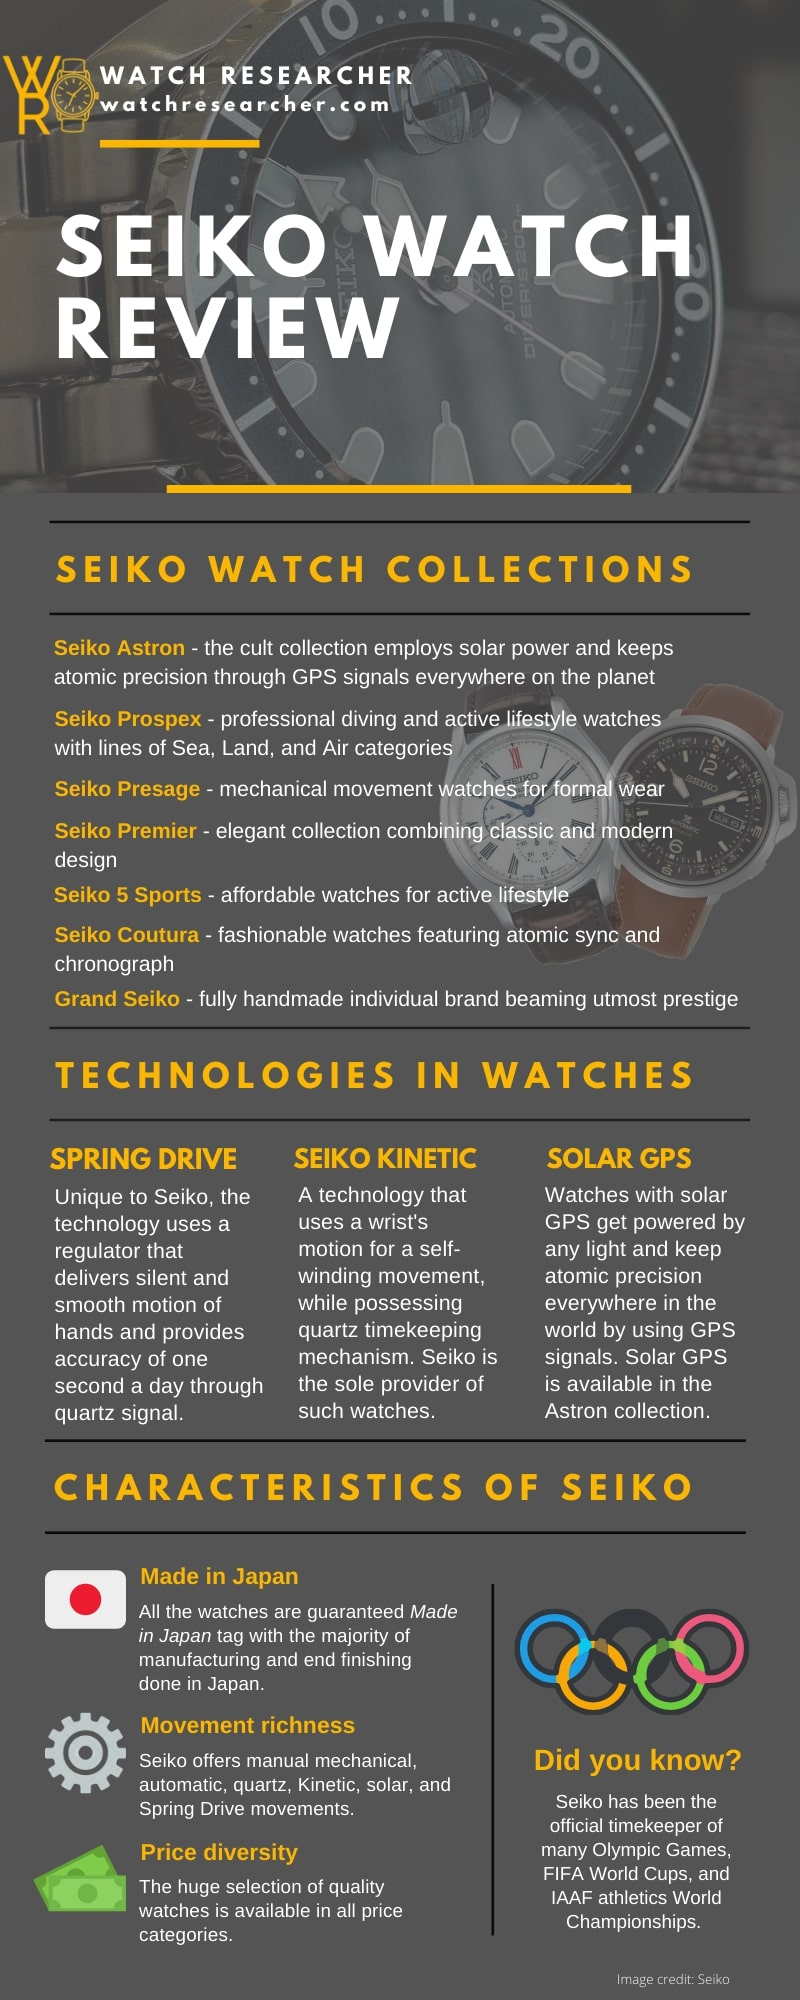 Seiko watch review in a comprehensive infographic